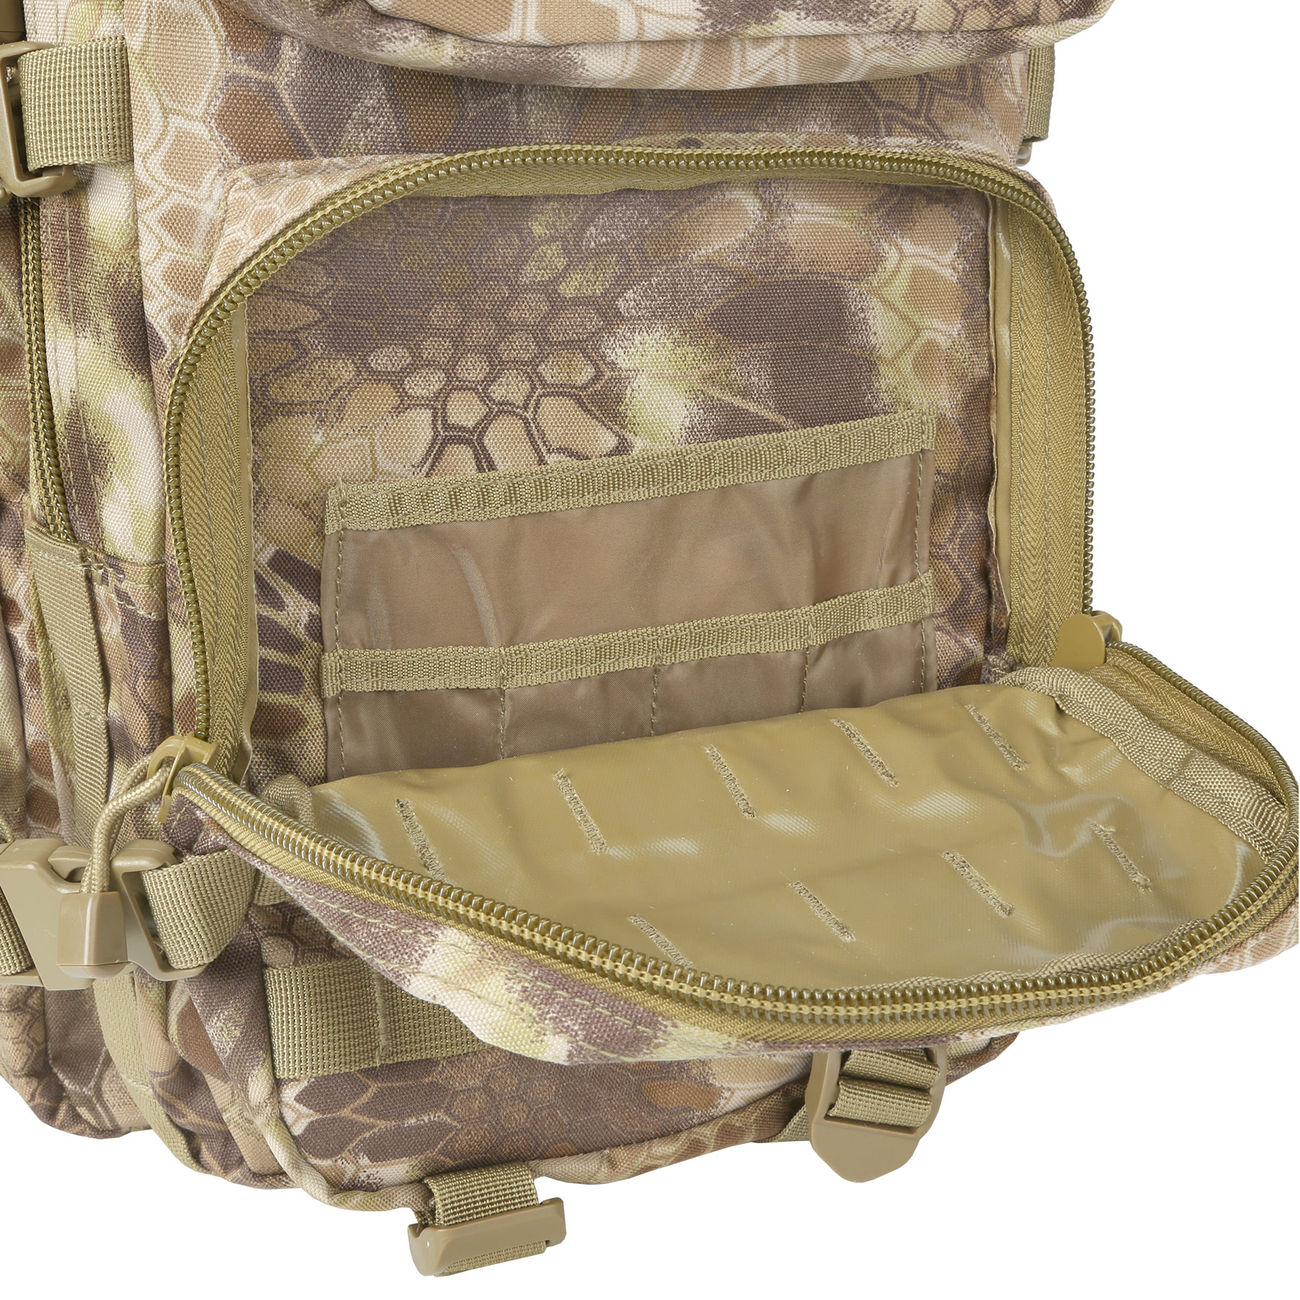 Mil-Tec Rucksack US Assault Pack II 40 Liter mandra tan 11